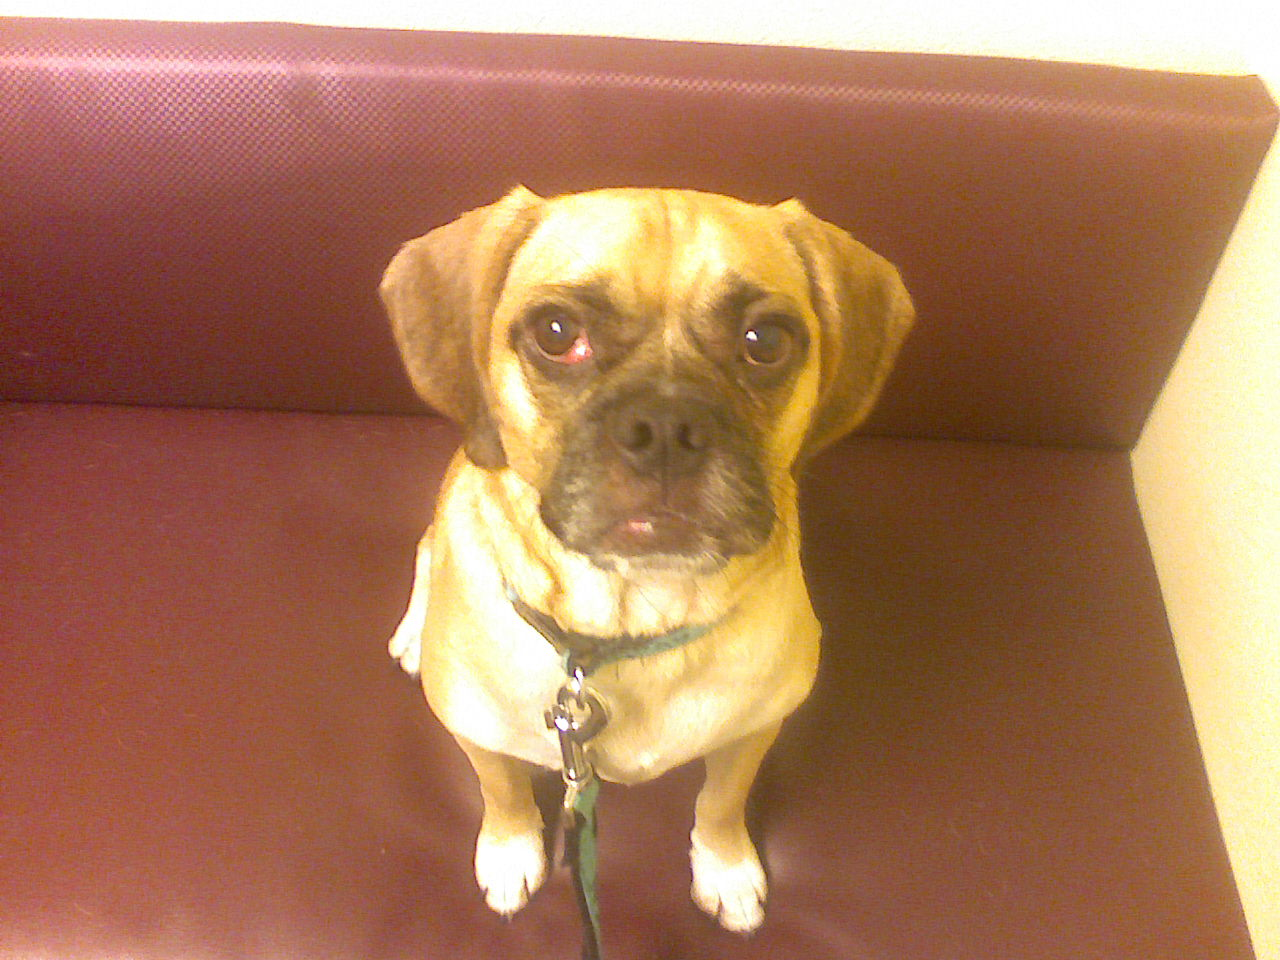 puggle eye problems